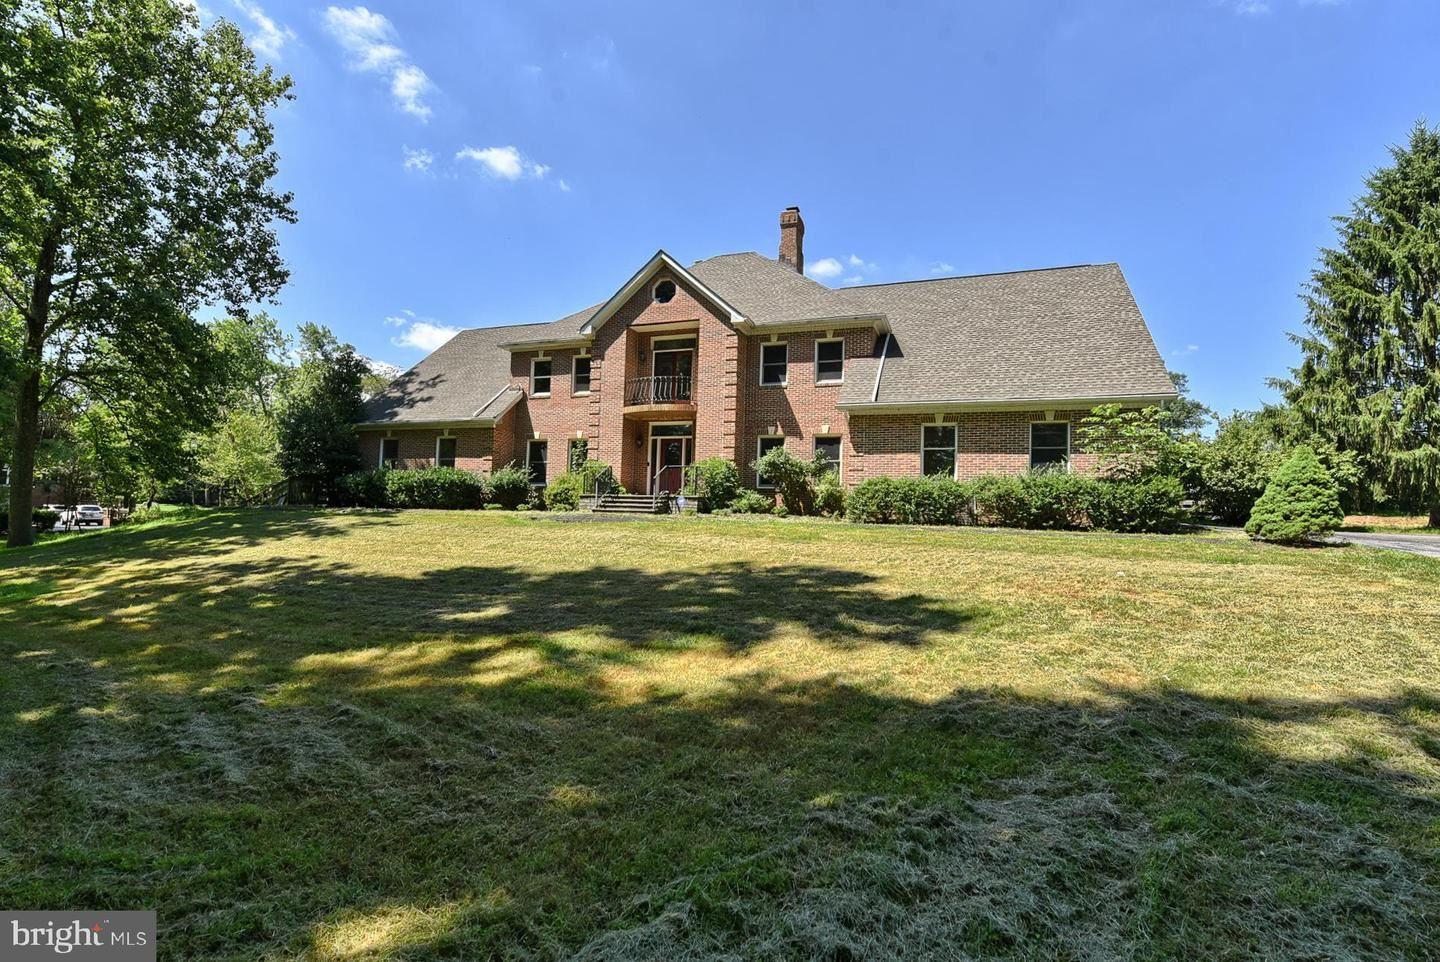 13300 WICKLOW PL, Clarksville, MD 21029 - MLS#: MDHW294360